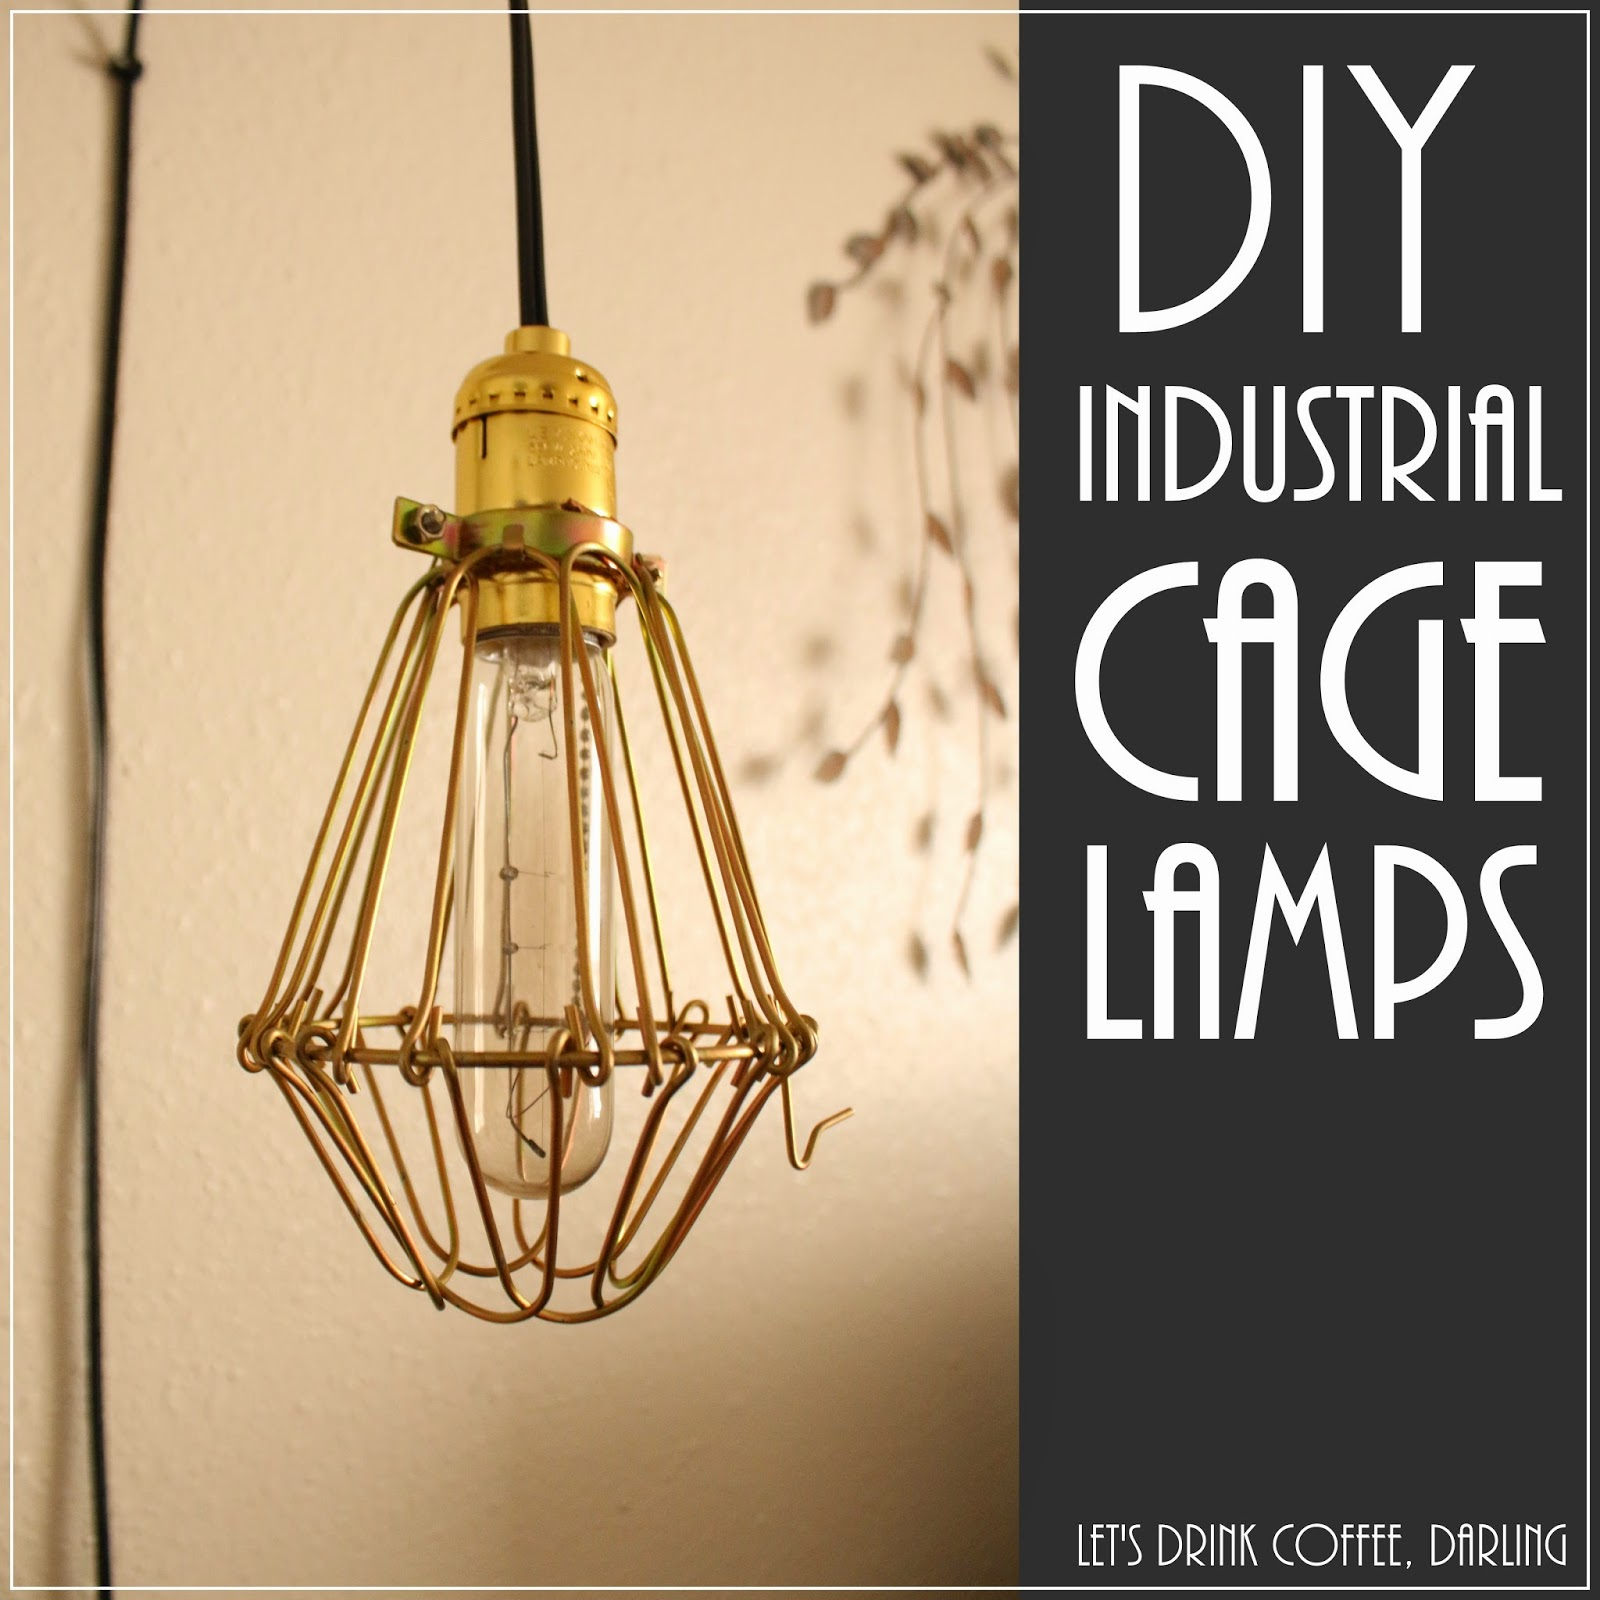 Lets drink coffee darling diy industrial cage lights diy industrial cage lights mozeypictures